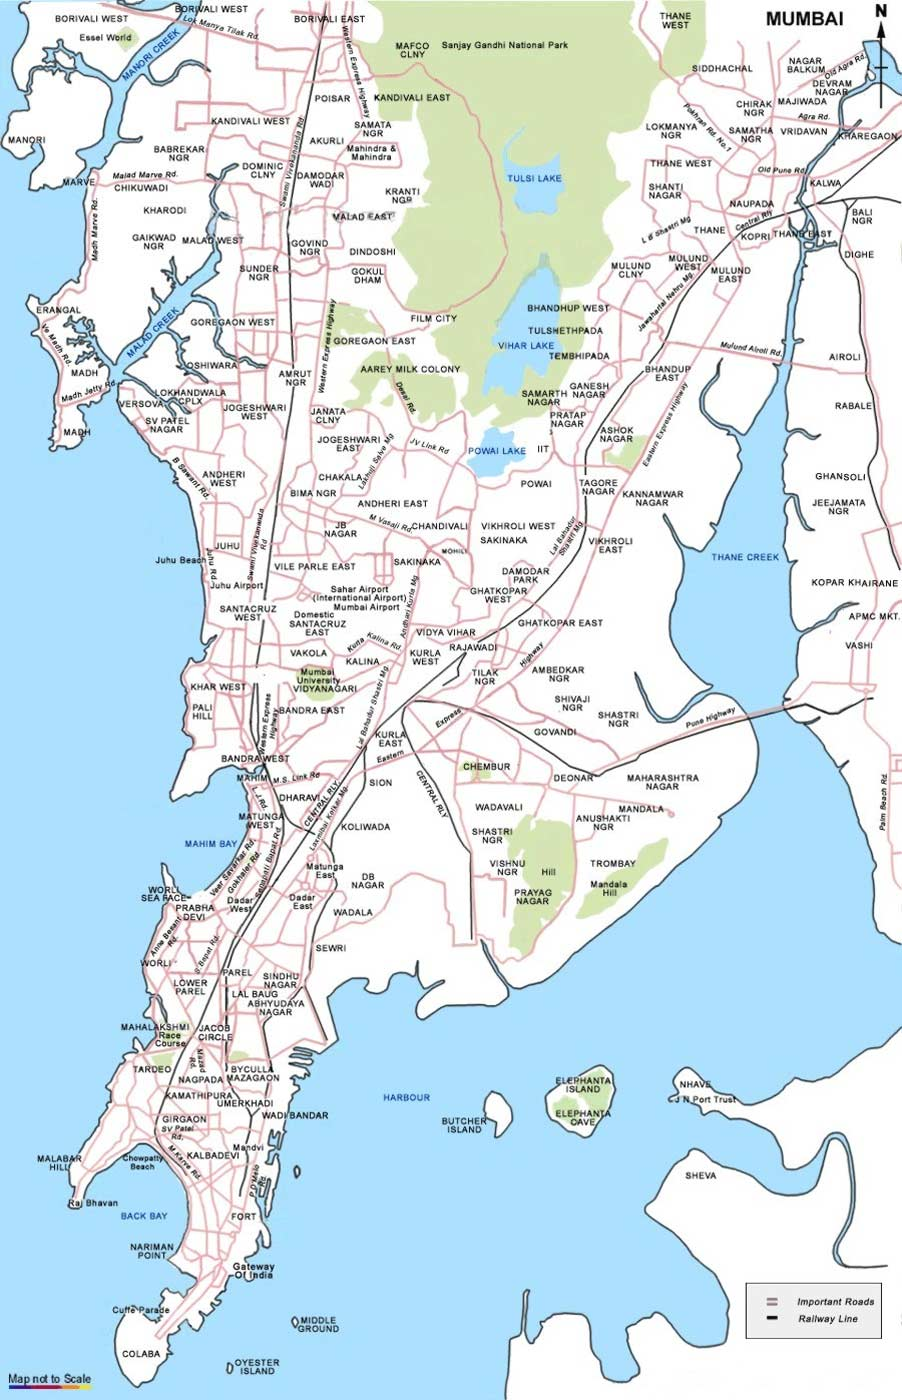 mumbai on map choice image diagram writing sample ideas and guide harbor breeze ceiling fan remote guide harbor breeze ceiling fan remote manual pdf